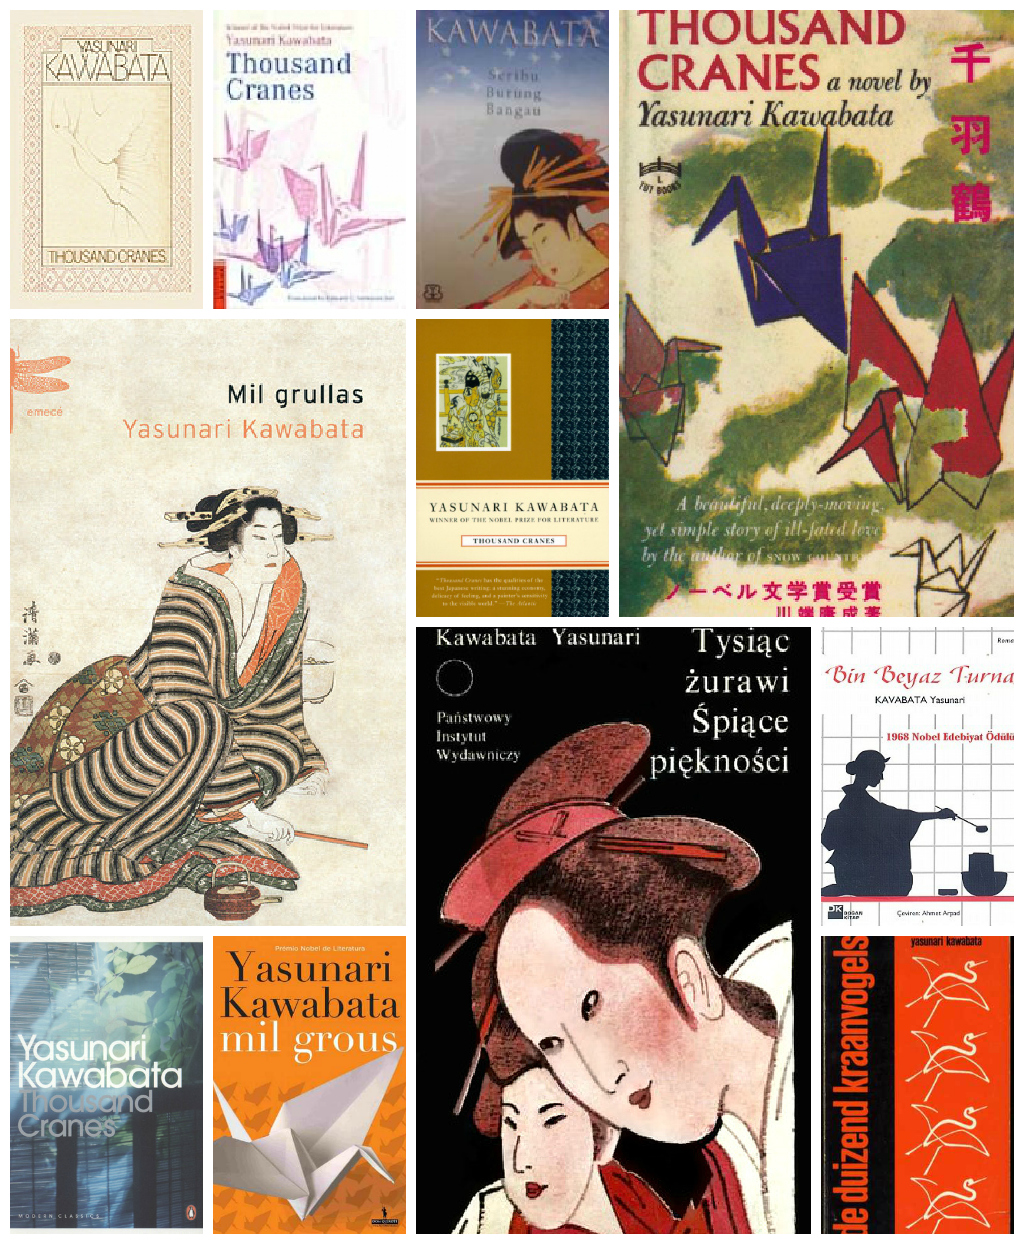 yasunari kawabata Best known in the west for such novels as snow country, beauty and sadness,  and a thousand cranes, yasunari kawabata was born in osaka in 1899.